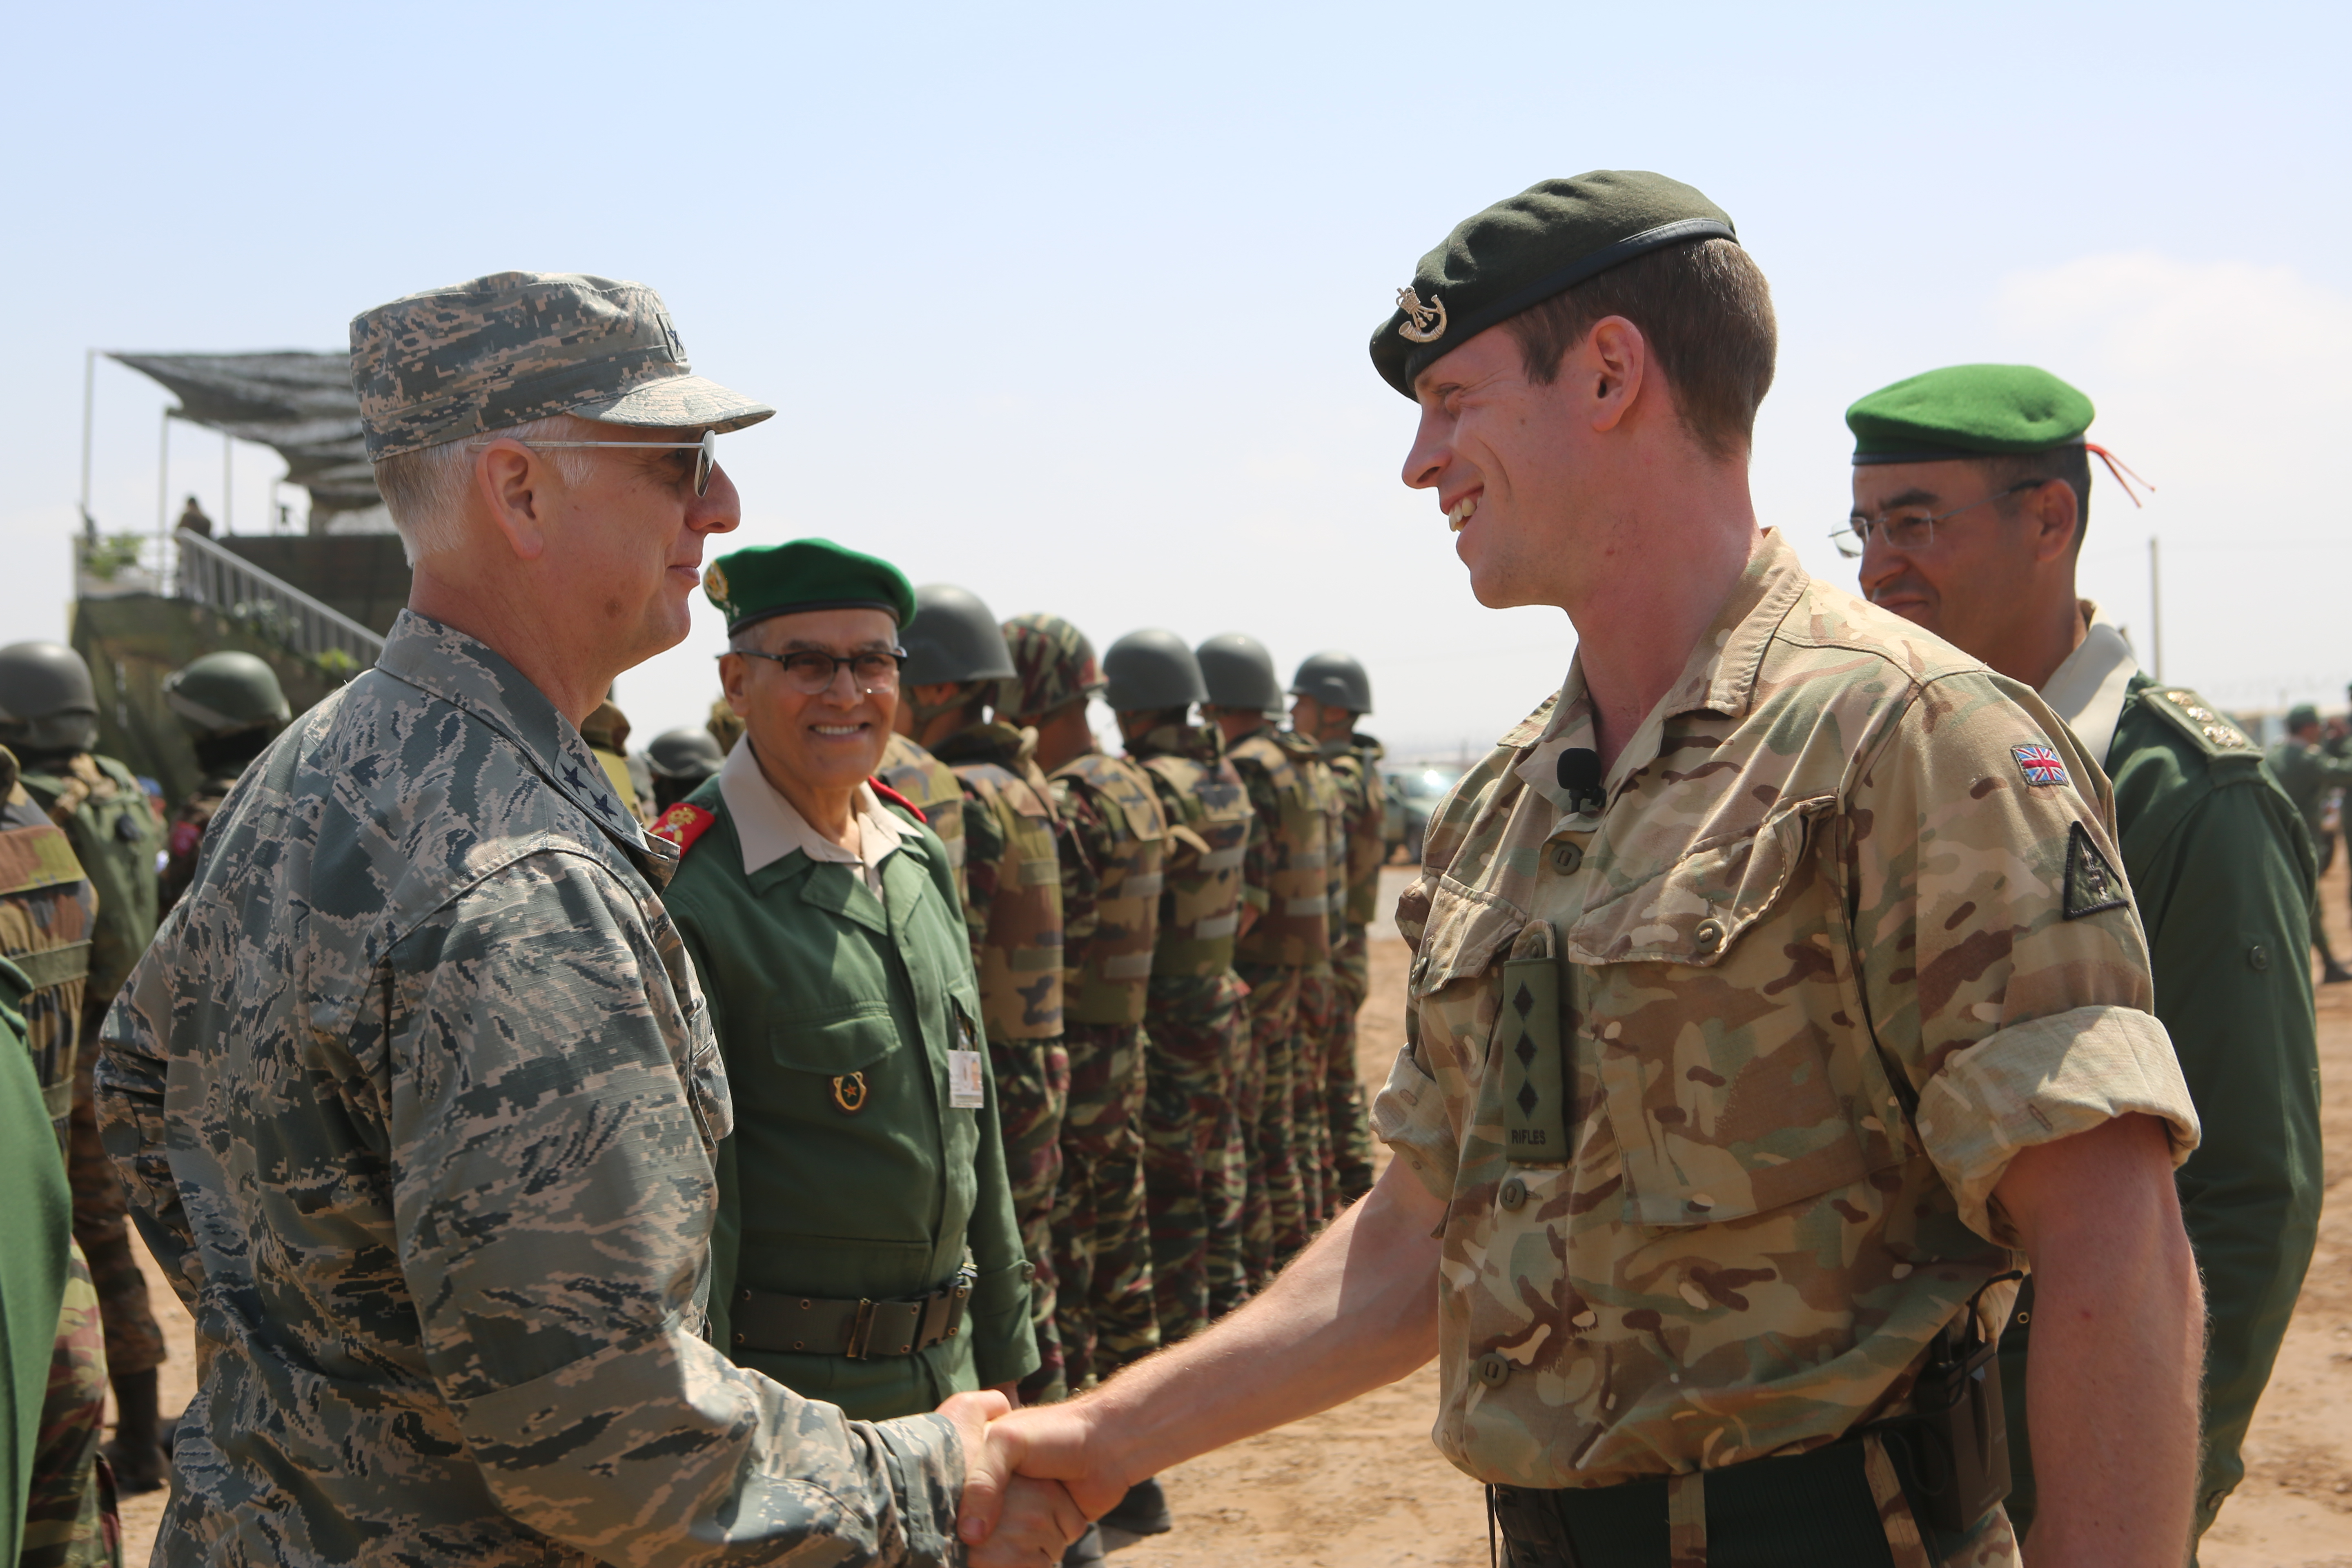 Air Force Maj.Gen. Mark Camerer, director of logistics for U.S. Africa Command, and other distinguished guests shakes hands with British Col. Dom Watson, British 4th Rifles commander, during Exercise African Lion 2018 distinguished visitor tour in Tifnit, Morocco, April 26, 2018. Marines, British soldiers and members of the Moroccan Royal Armed Forces demonstrated tactics, techniques, and procedures from the past two weeks of field training exercises. Exercise African Lion is a continuation of the U.S. and Morocco's long-standing relationship focused on security cooperation. (U.S. Marine Corps photo by Sgt. Averi Coppa/Released)